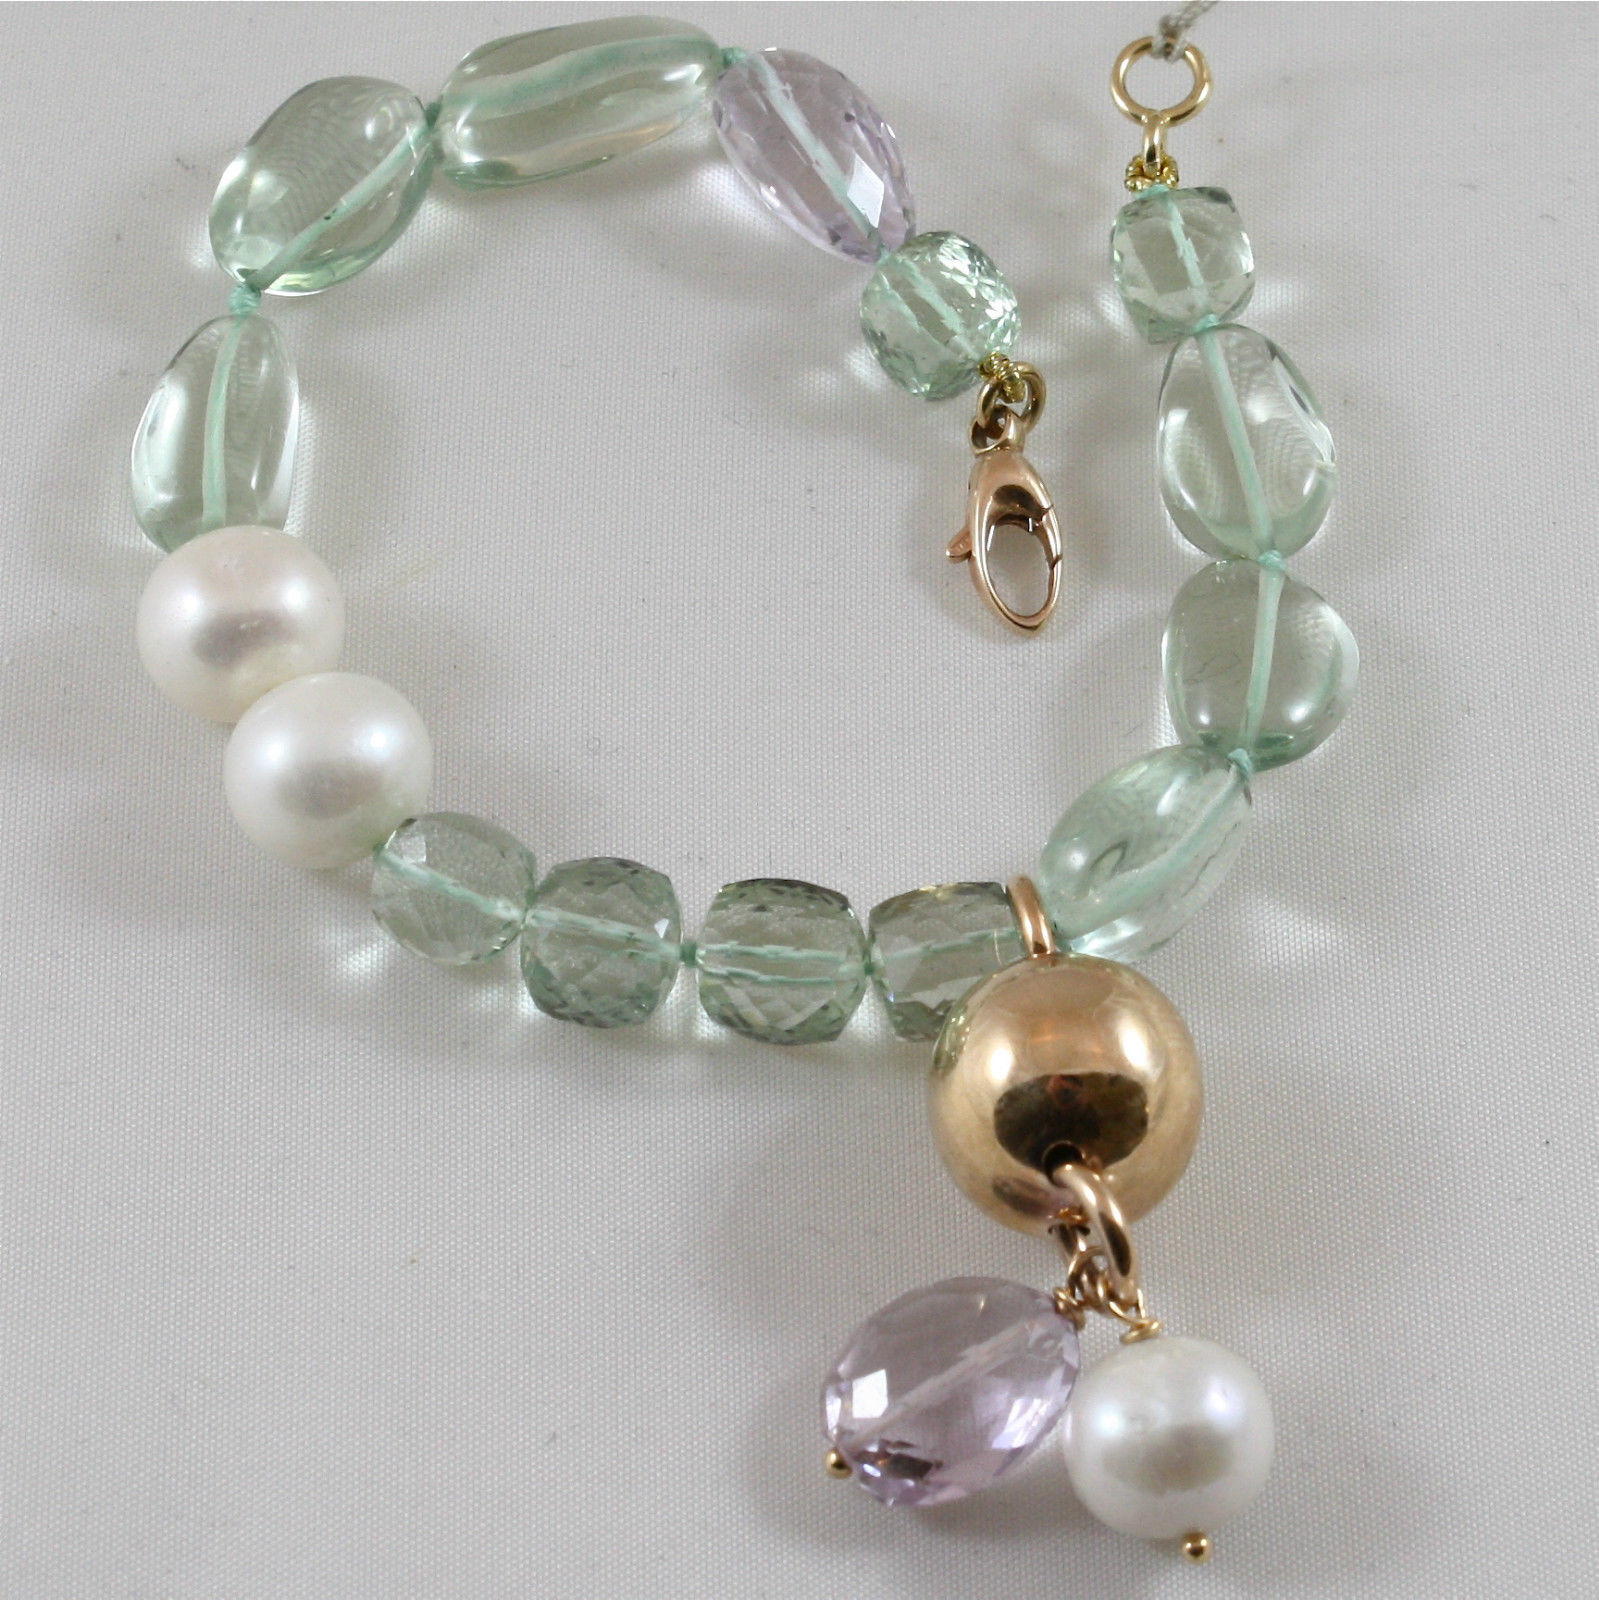 18K 750 ROSE GOLD BRACELET WITH PERIDOT, AMETHYST, PEARL, MADE IN ITALY